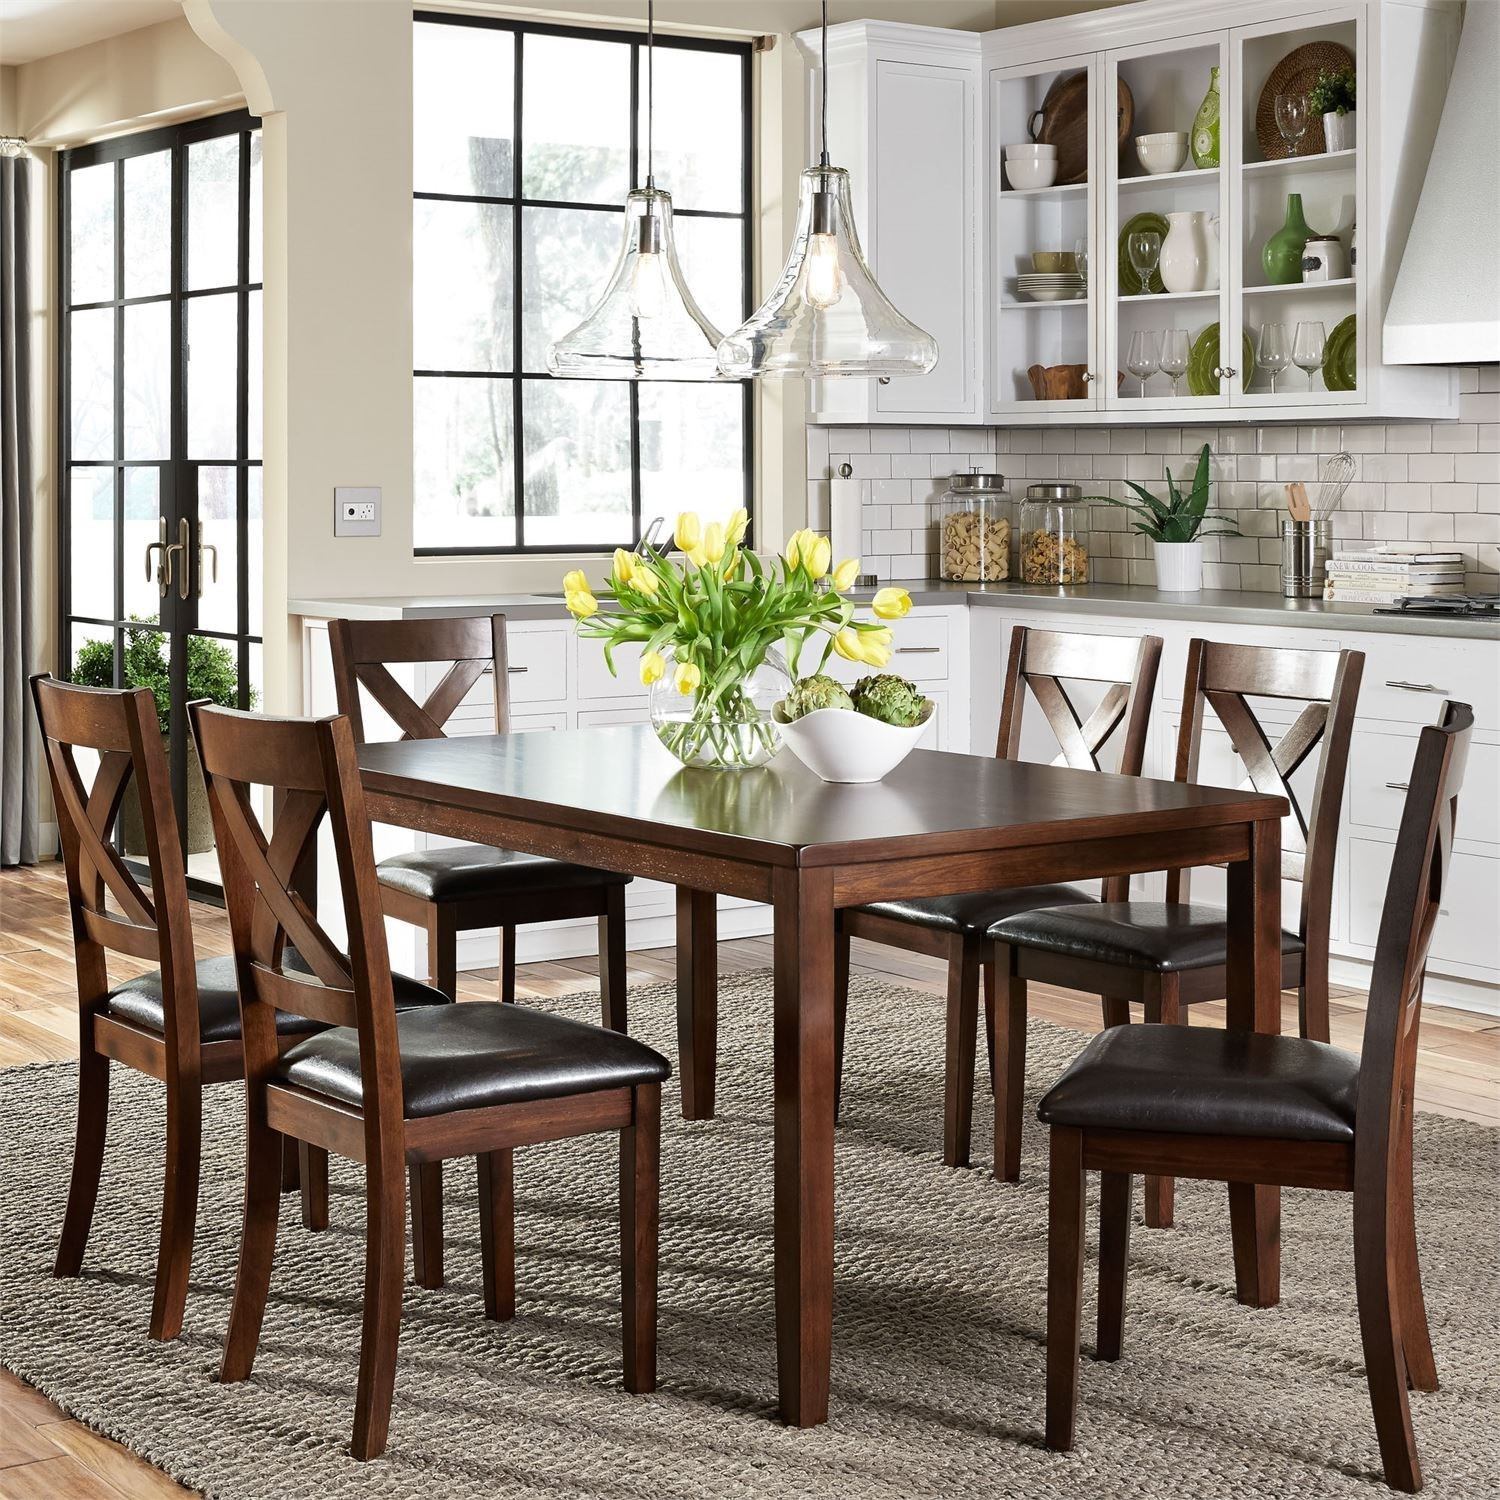 Thornton 7 Piece Rectangular Table Set by Freedom Furniture at Ruby Gordon Home